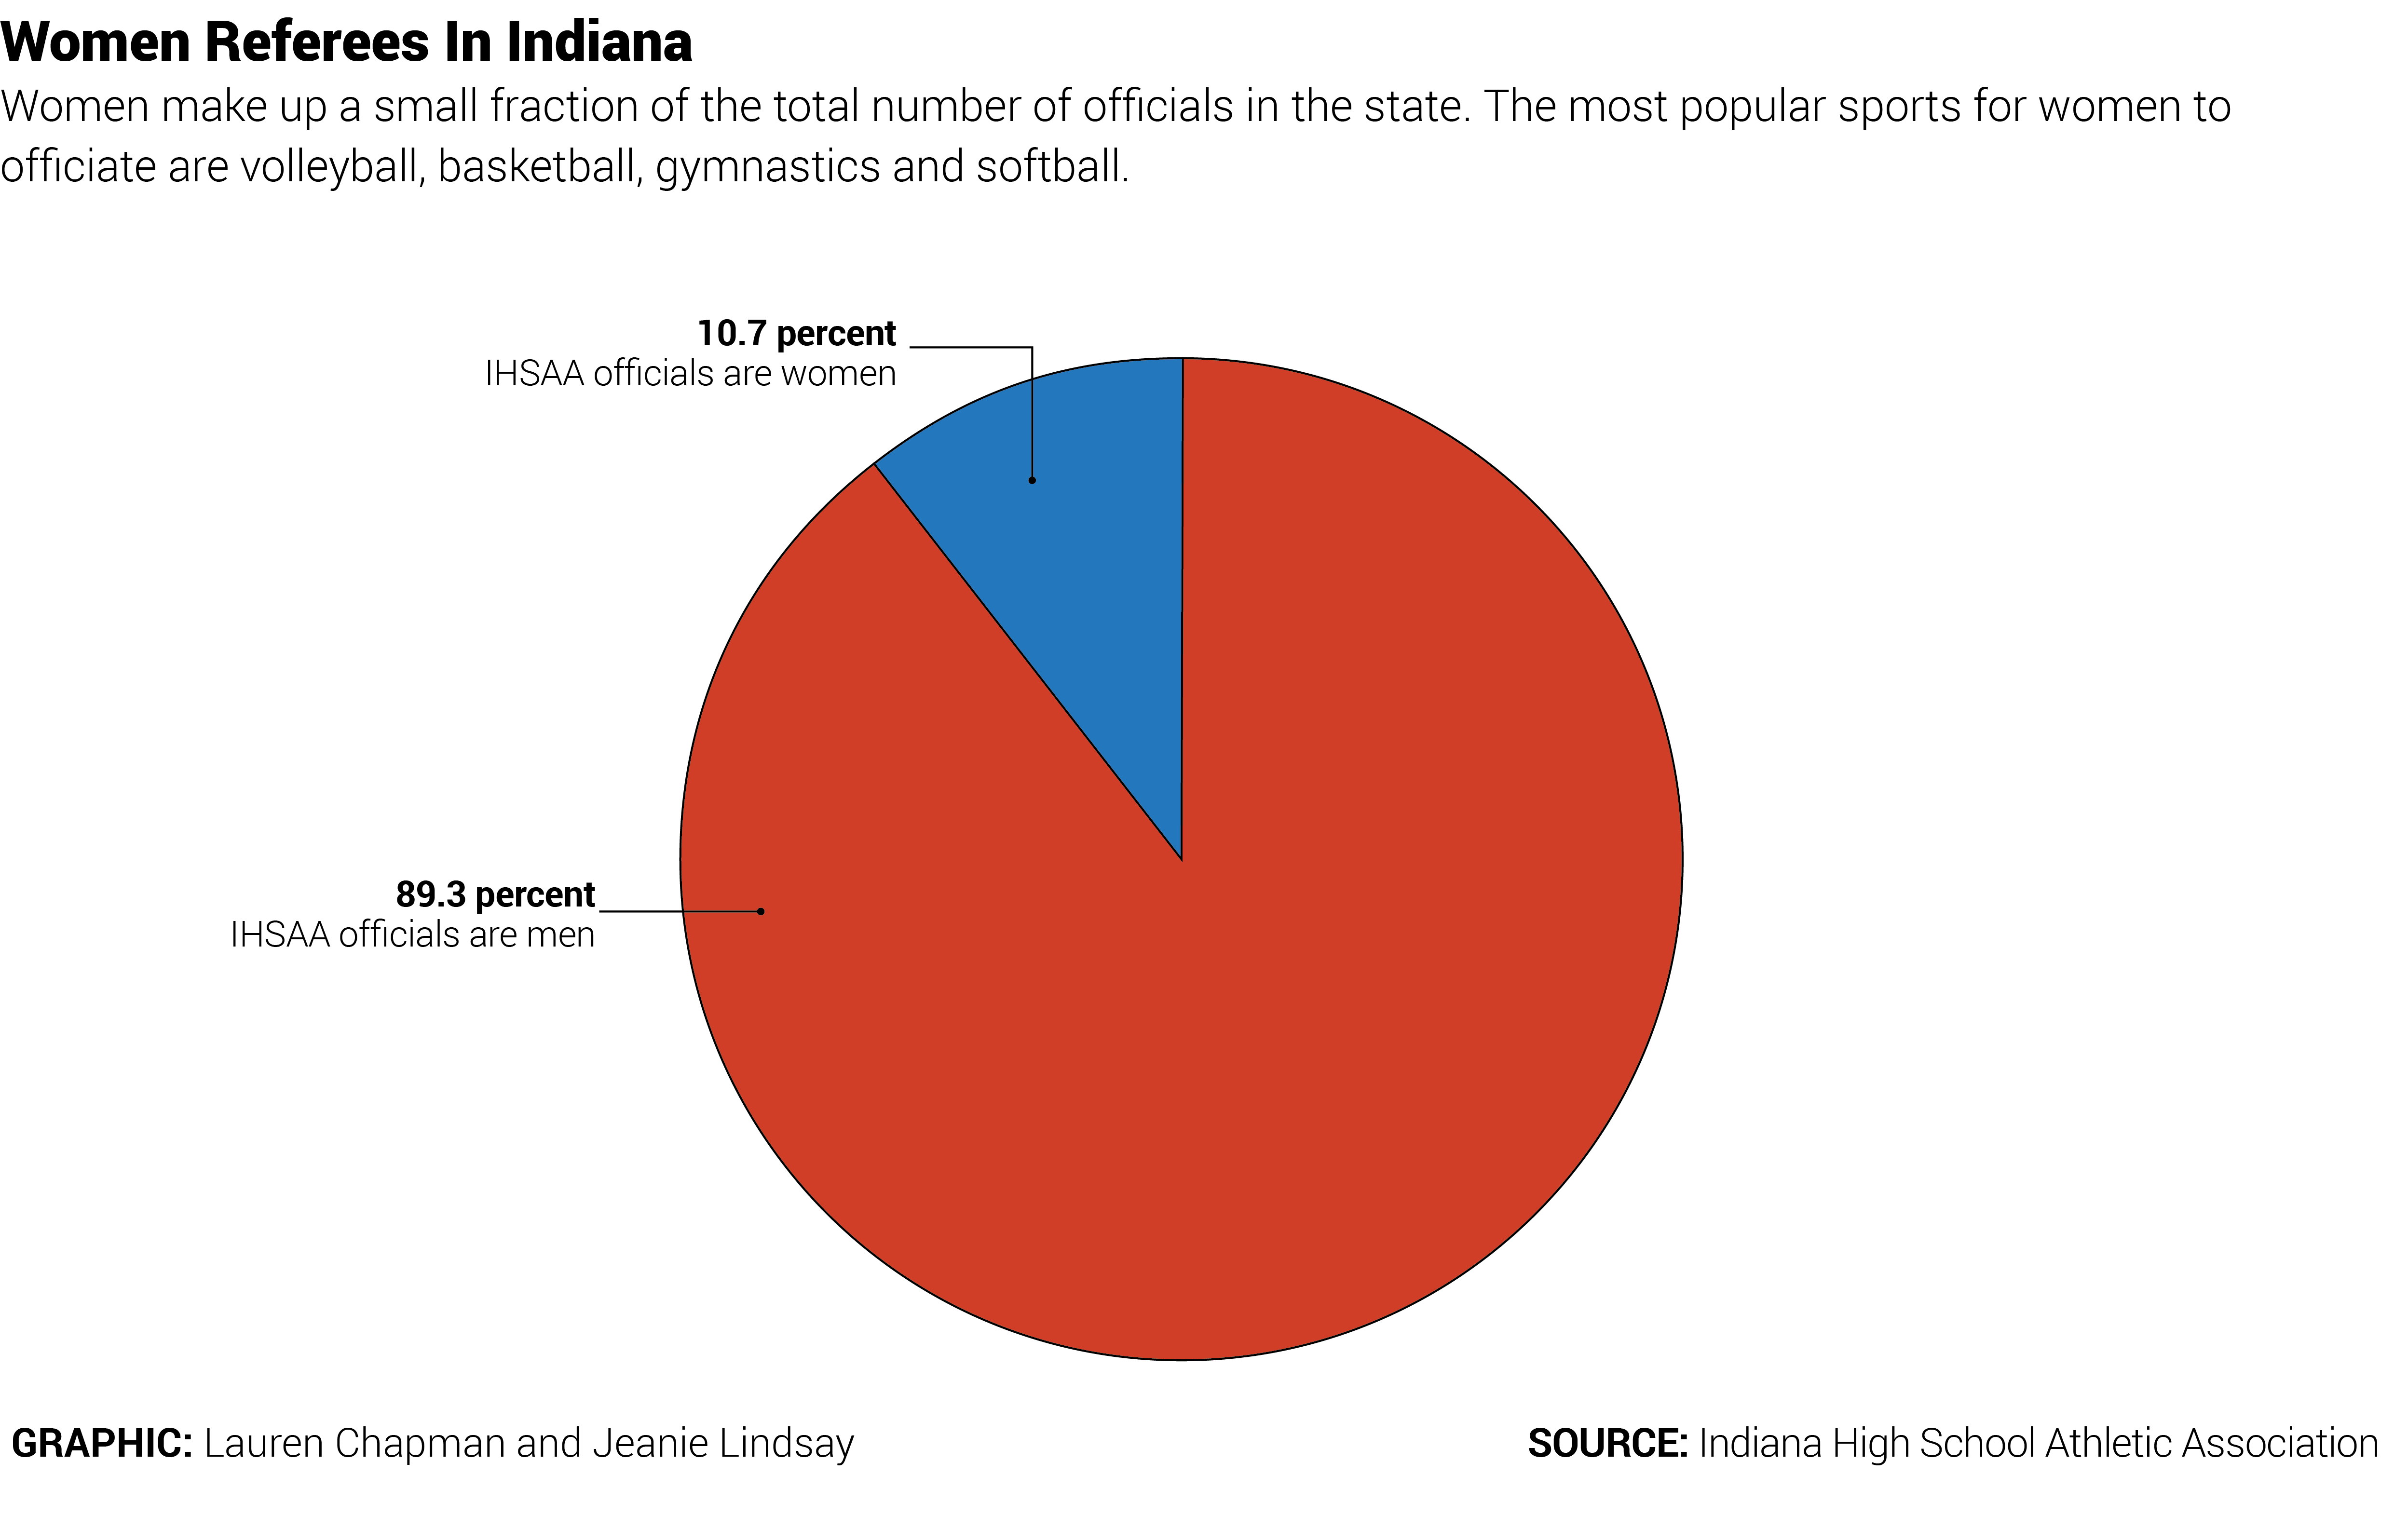 A pie chart graphic showing the small number of high school sports officials that are women.